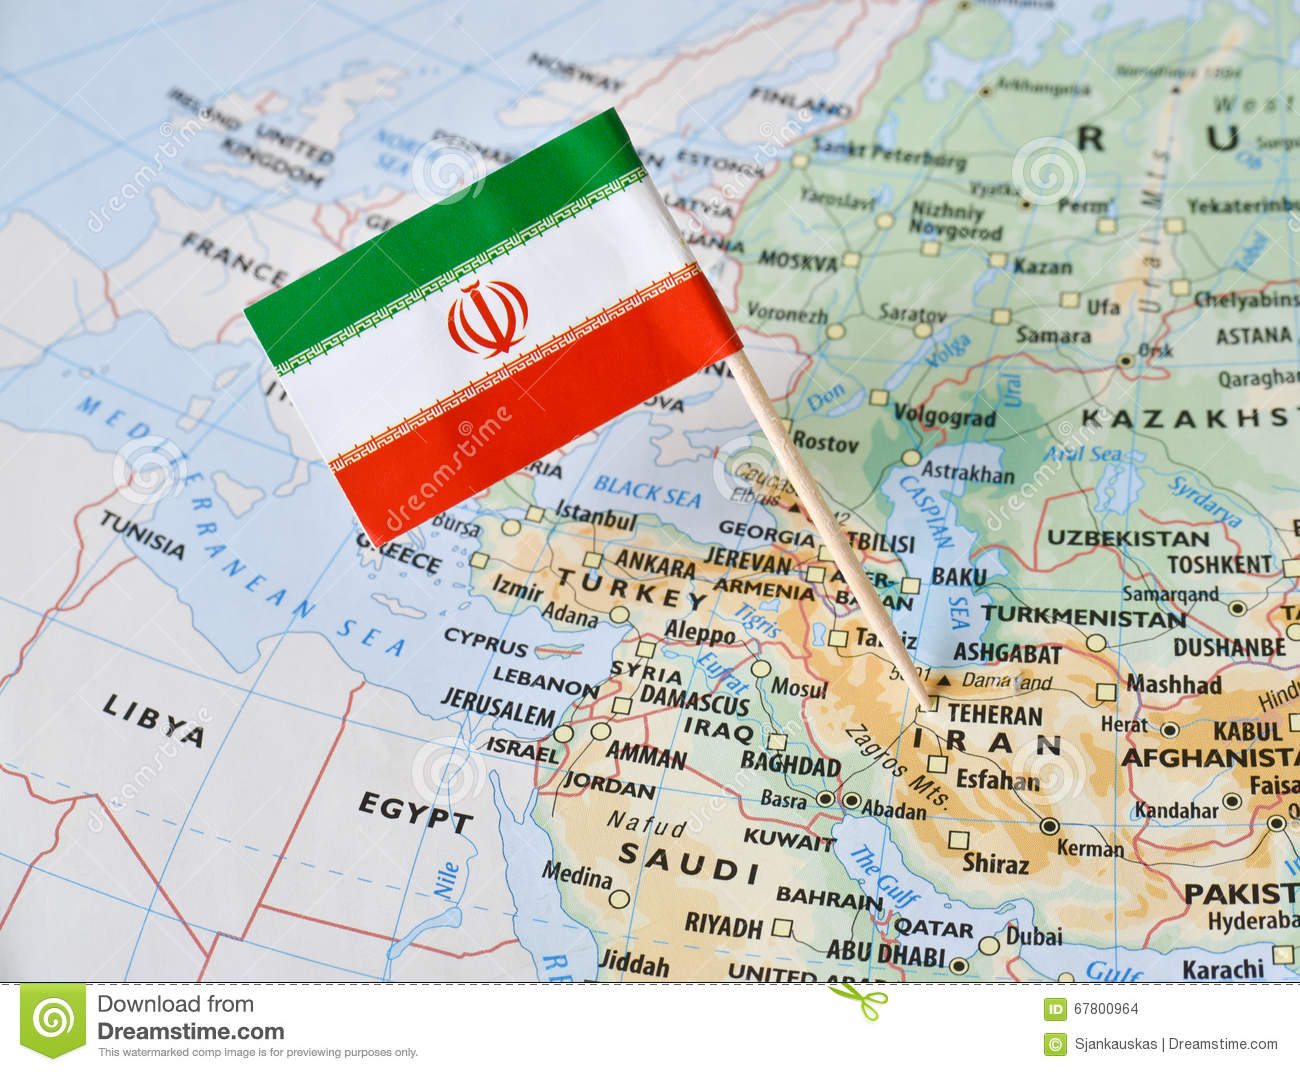 55 876 Iran Photos Free Royalty Free Stock Photos From Dreamstime